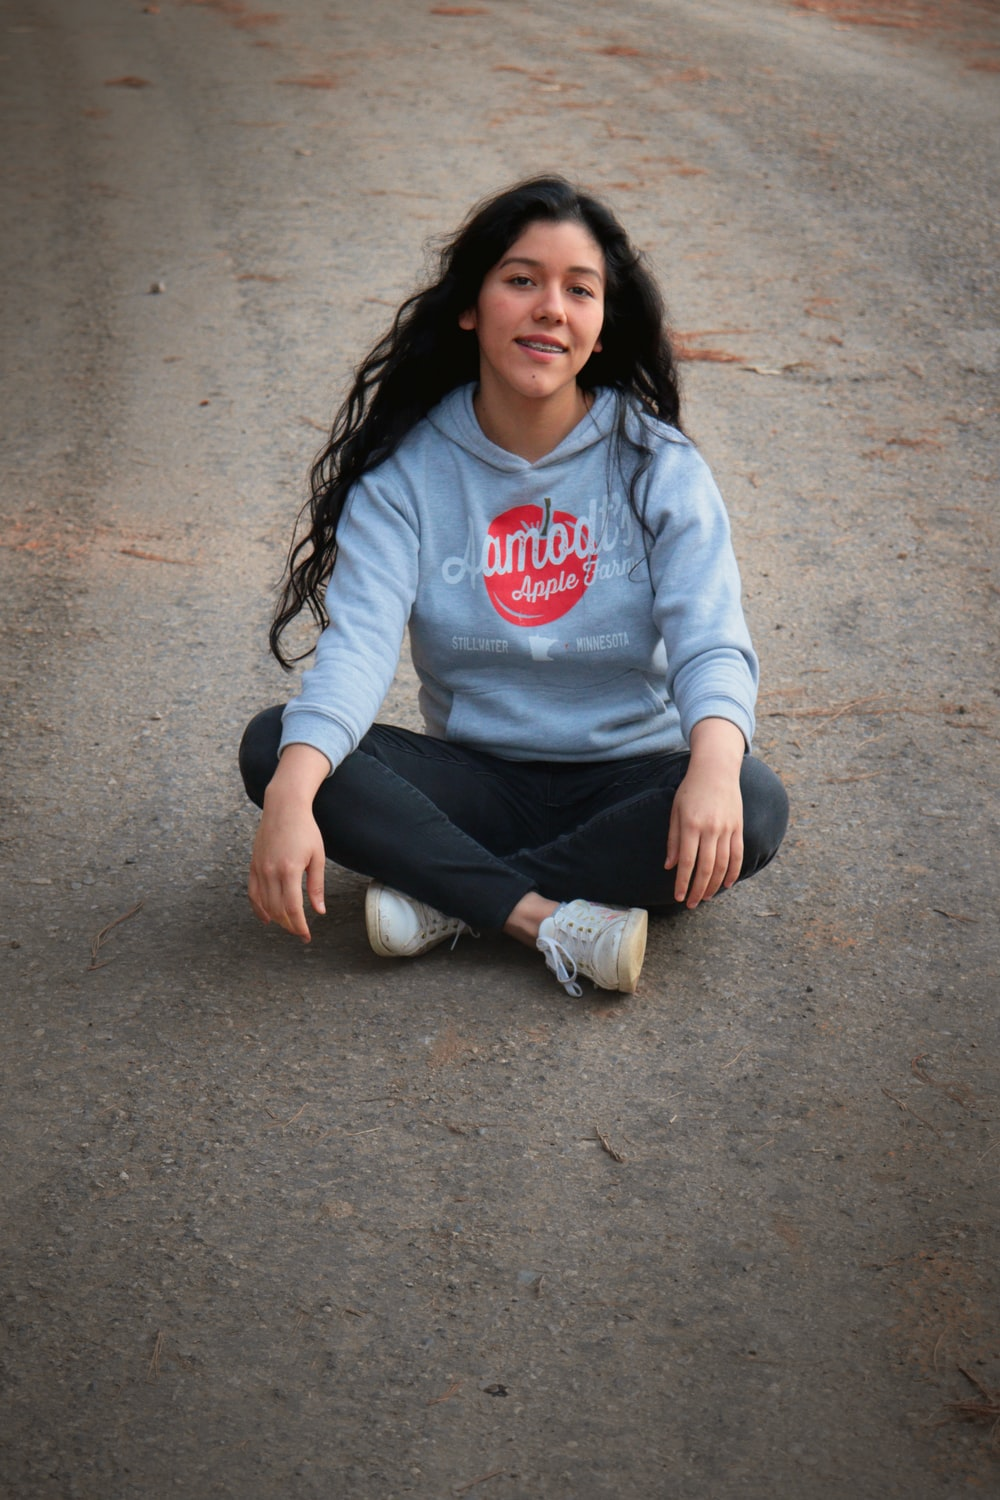 woman in white and red long sleeve shirt and black pants sitting on gray concrete floor